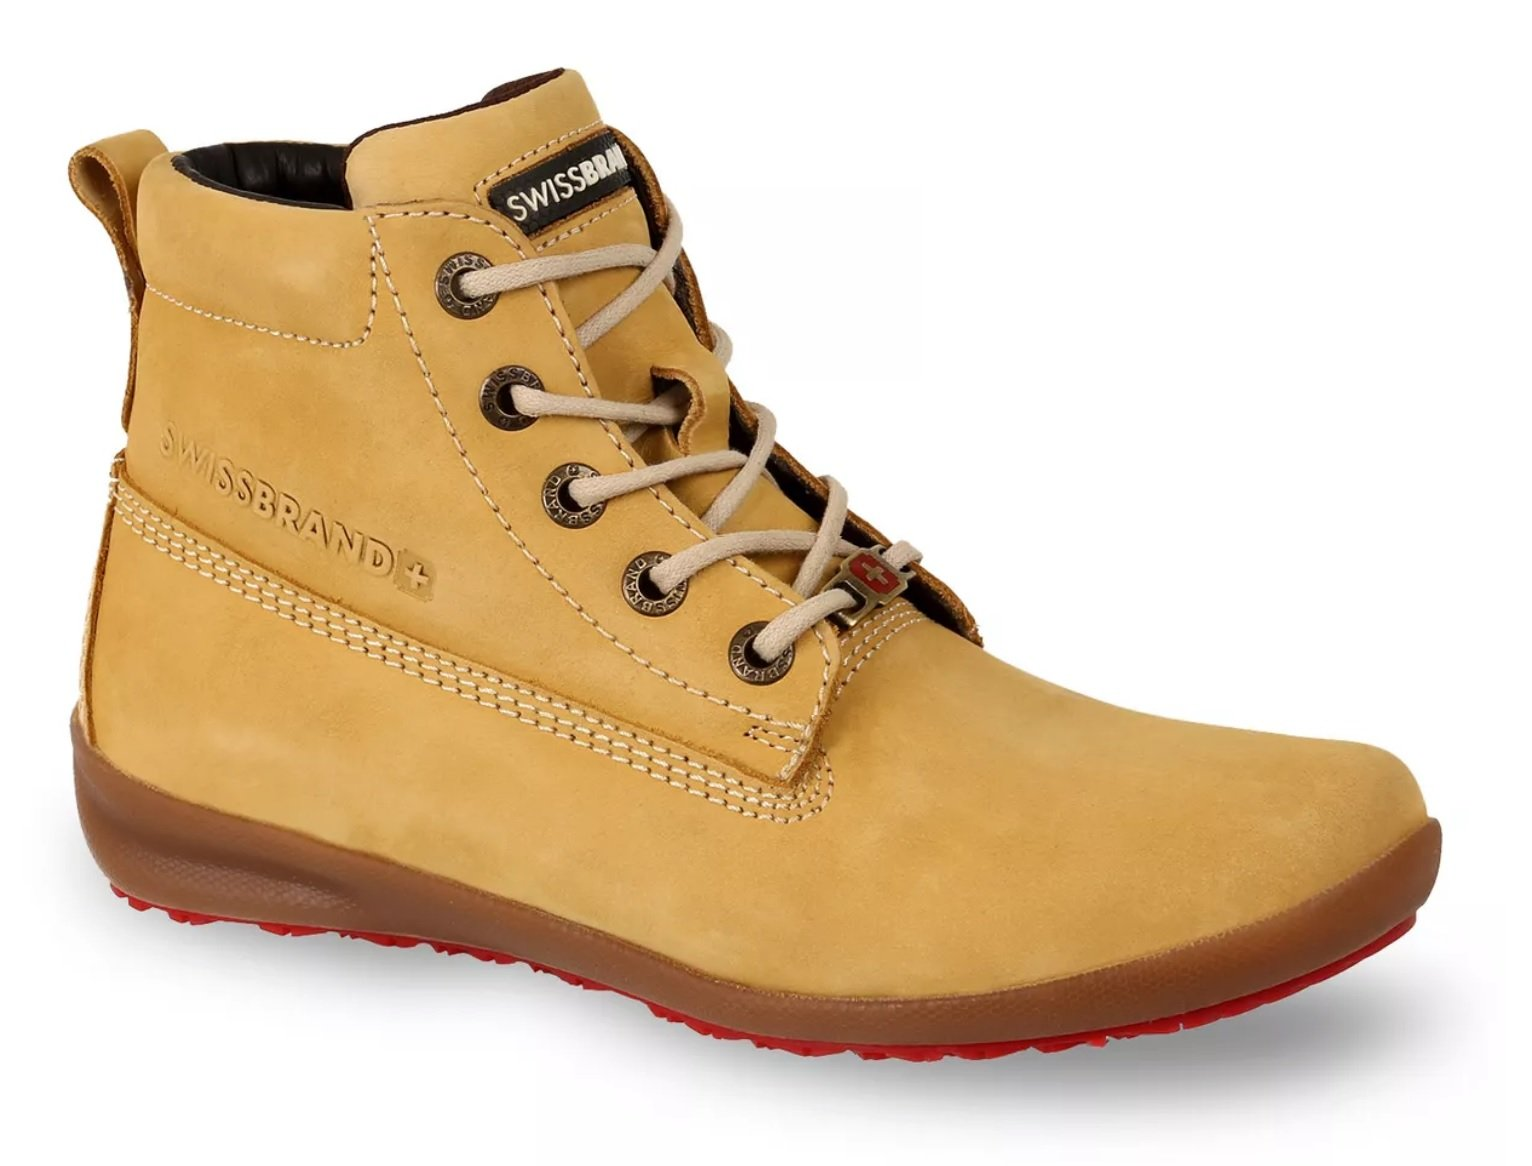 Swissbrand Women's Casual Boot Yellow Leather Lace-up Cushion Comfort Shoe (7)